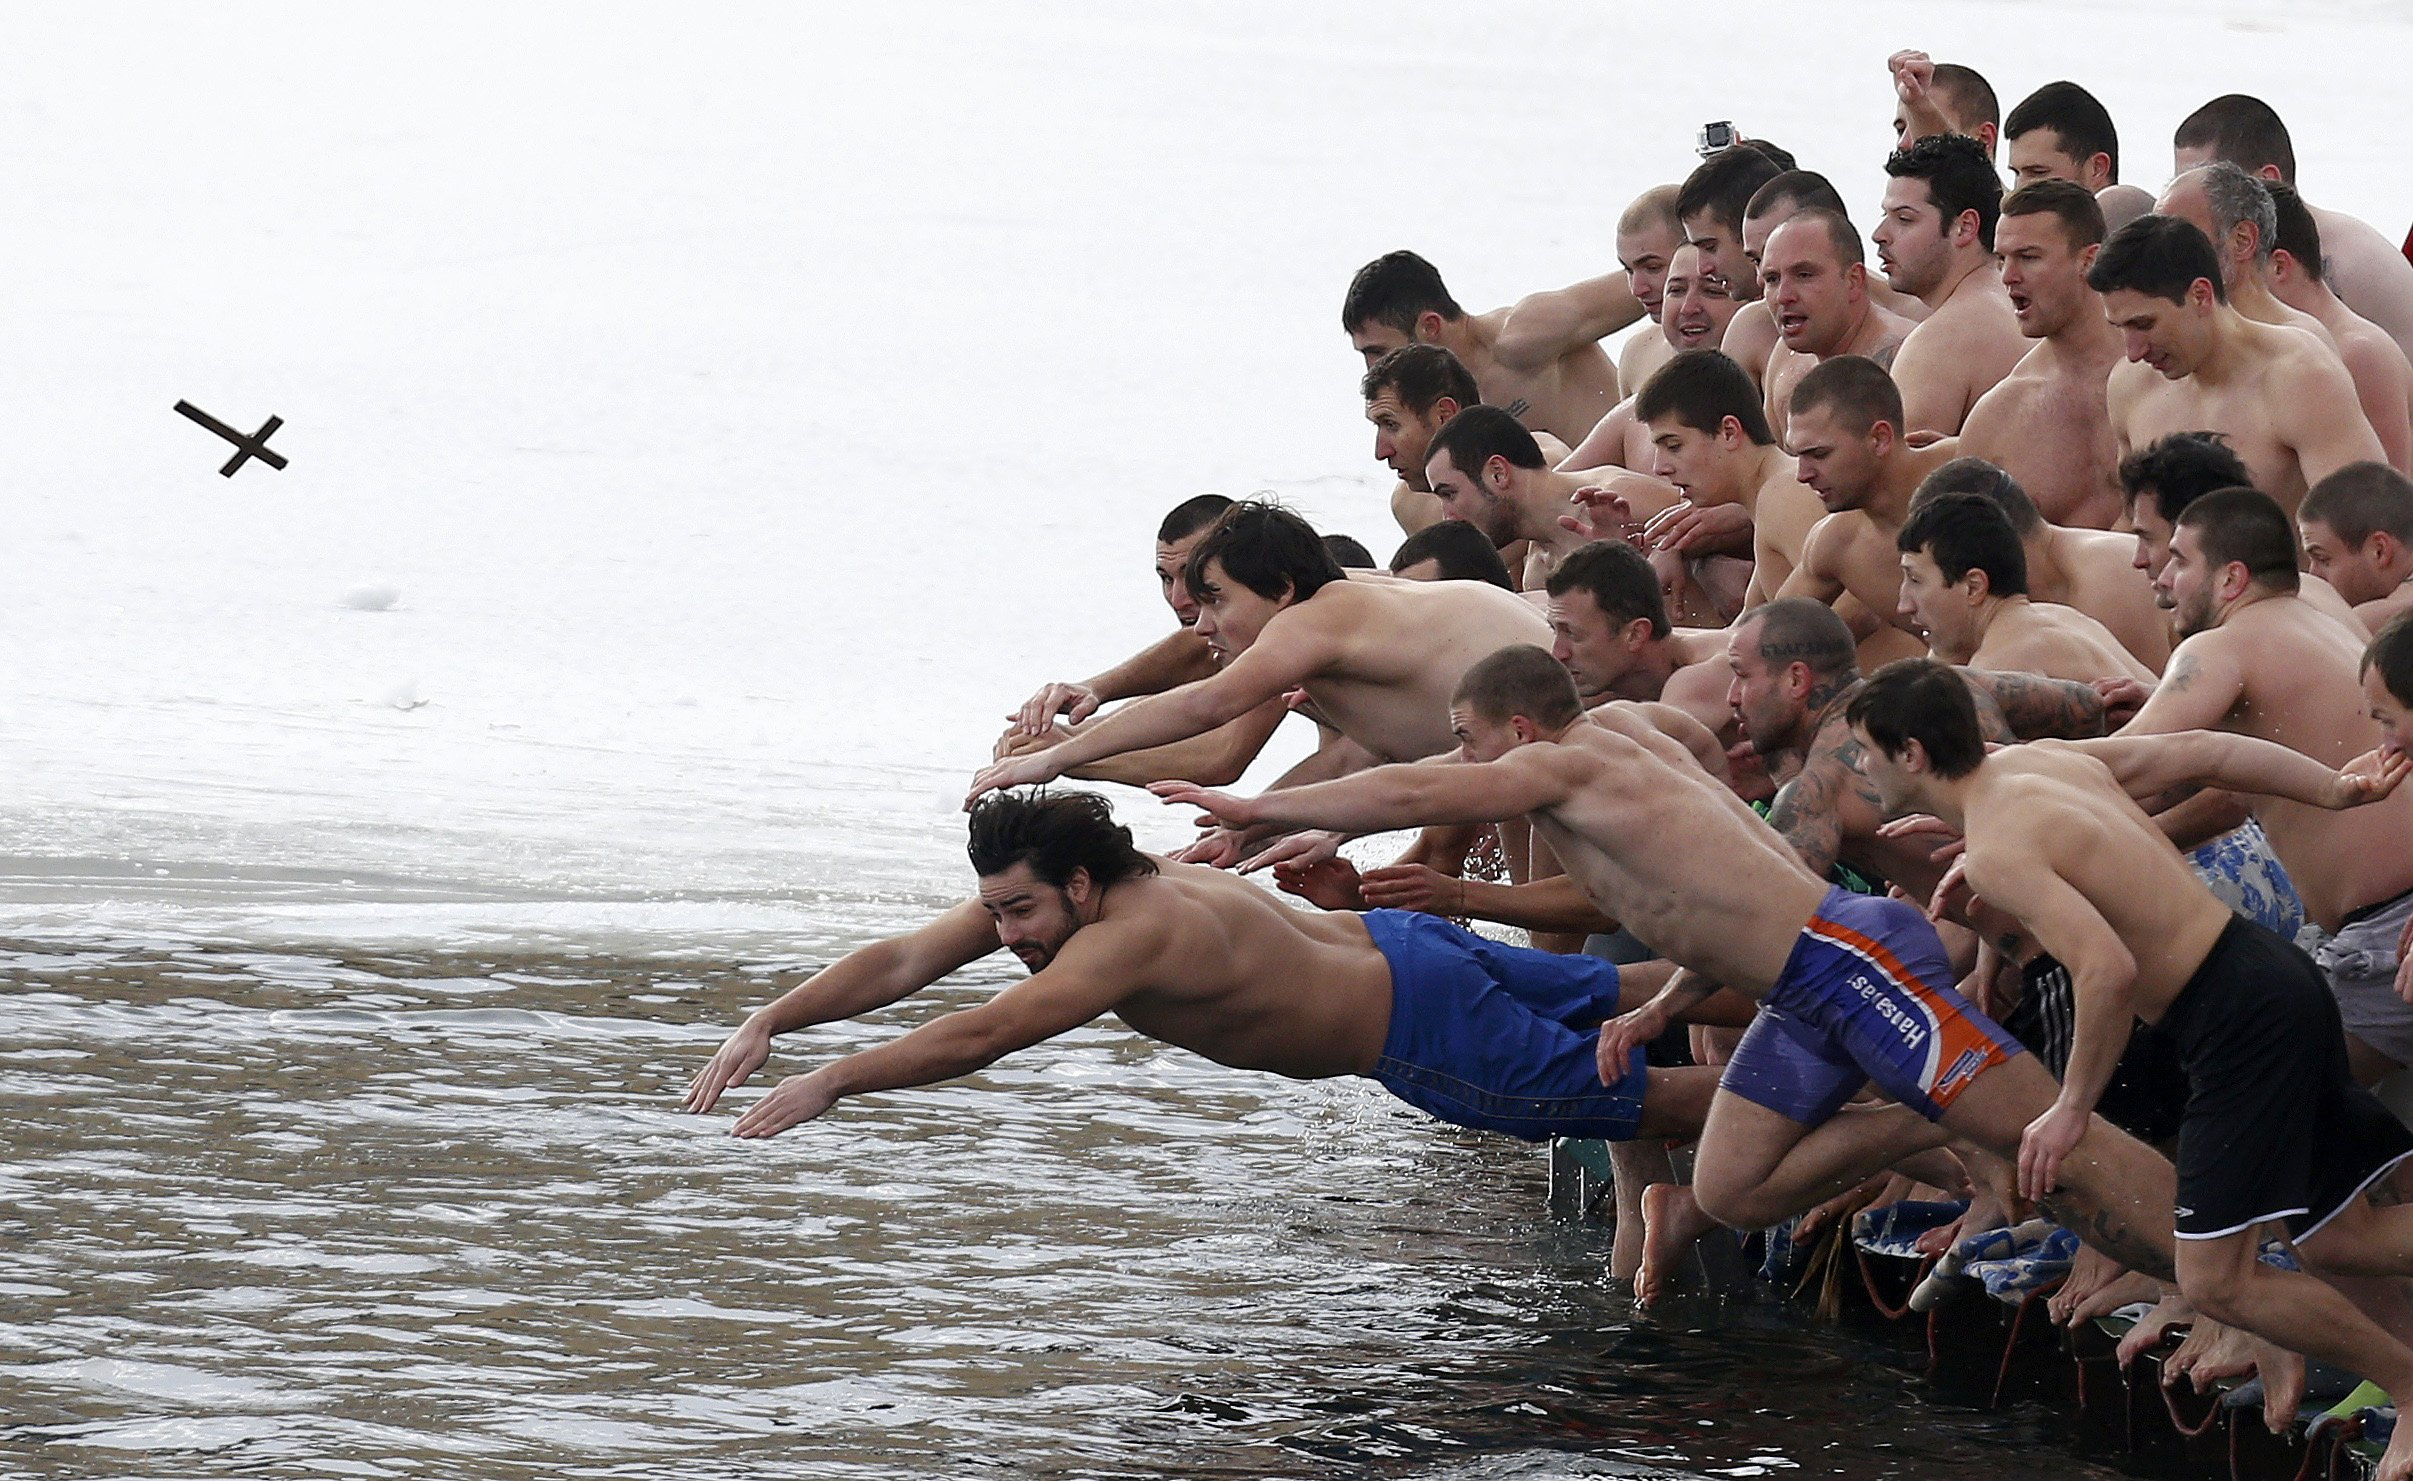 Men jump into the waters of a lake in an attempt to grab a wooden cross on Epiphany Day in Sofia...Men jump into the waters of a lake in an attempt to grab a wooden cross on Epiphany Day in Sofia January 6, 2015. Orthodox priests throughout the country bless the waters by throwing a cross into it as worshippers try to retrieve it. It is strongly believed that catching the cross brings health and prosperity to the person who captures it.    REUTERS/Stoyan Nenov (BULGARIA  - Tags: SOCIETY RELIGION TPX IMAGES OF THE DAY)